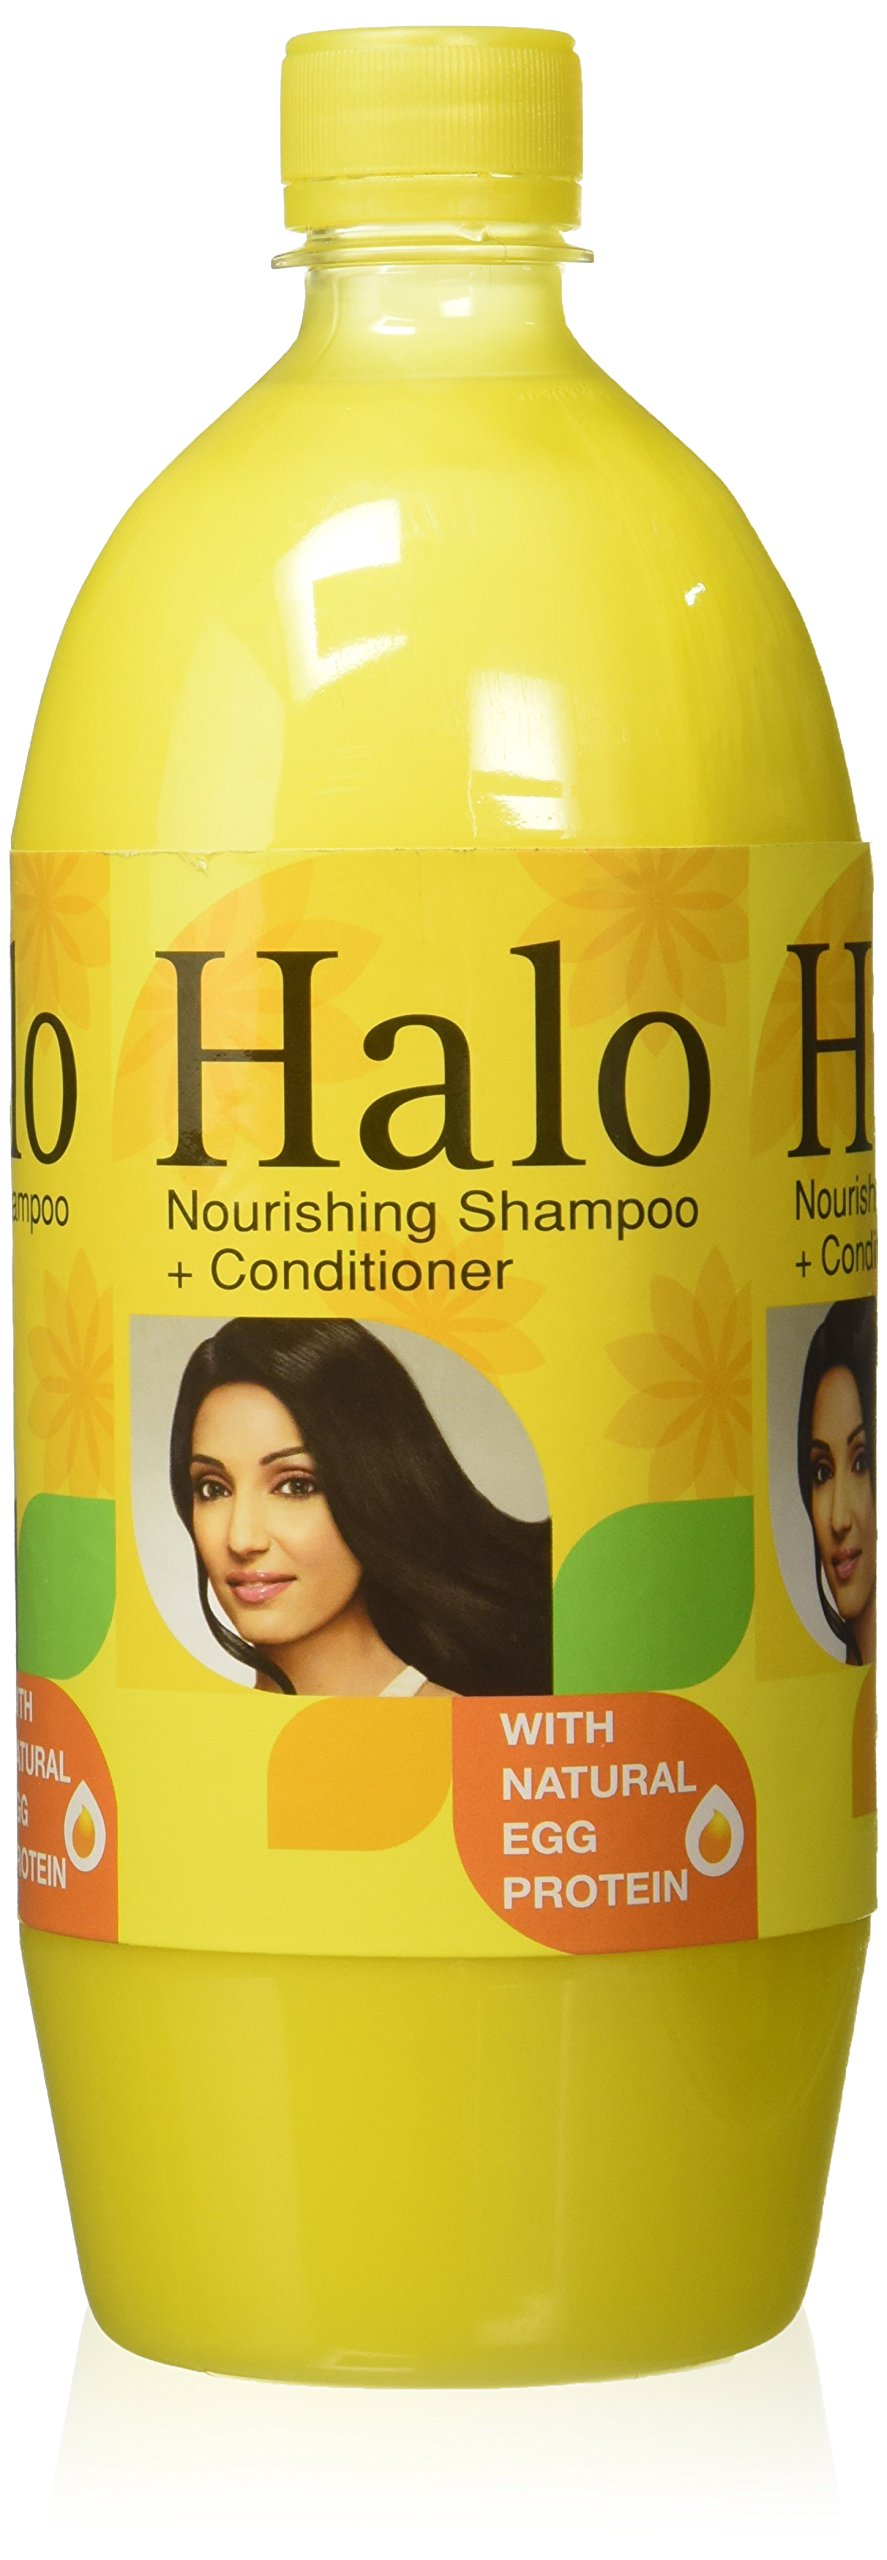 Halo Nourishing Shampoo with Natural Egg Protien, 1L product image